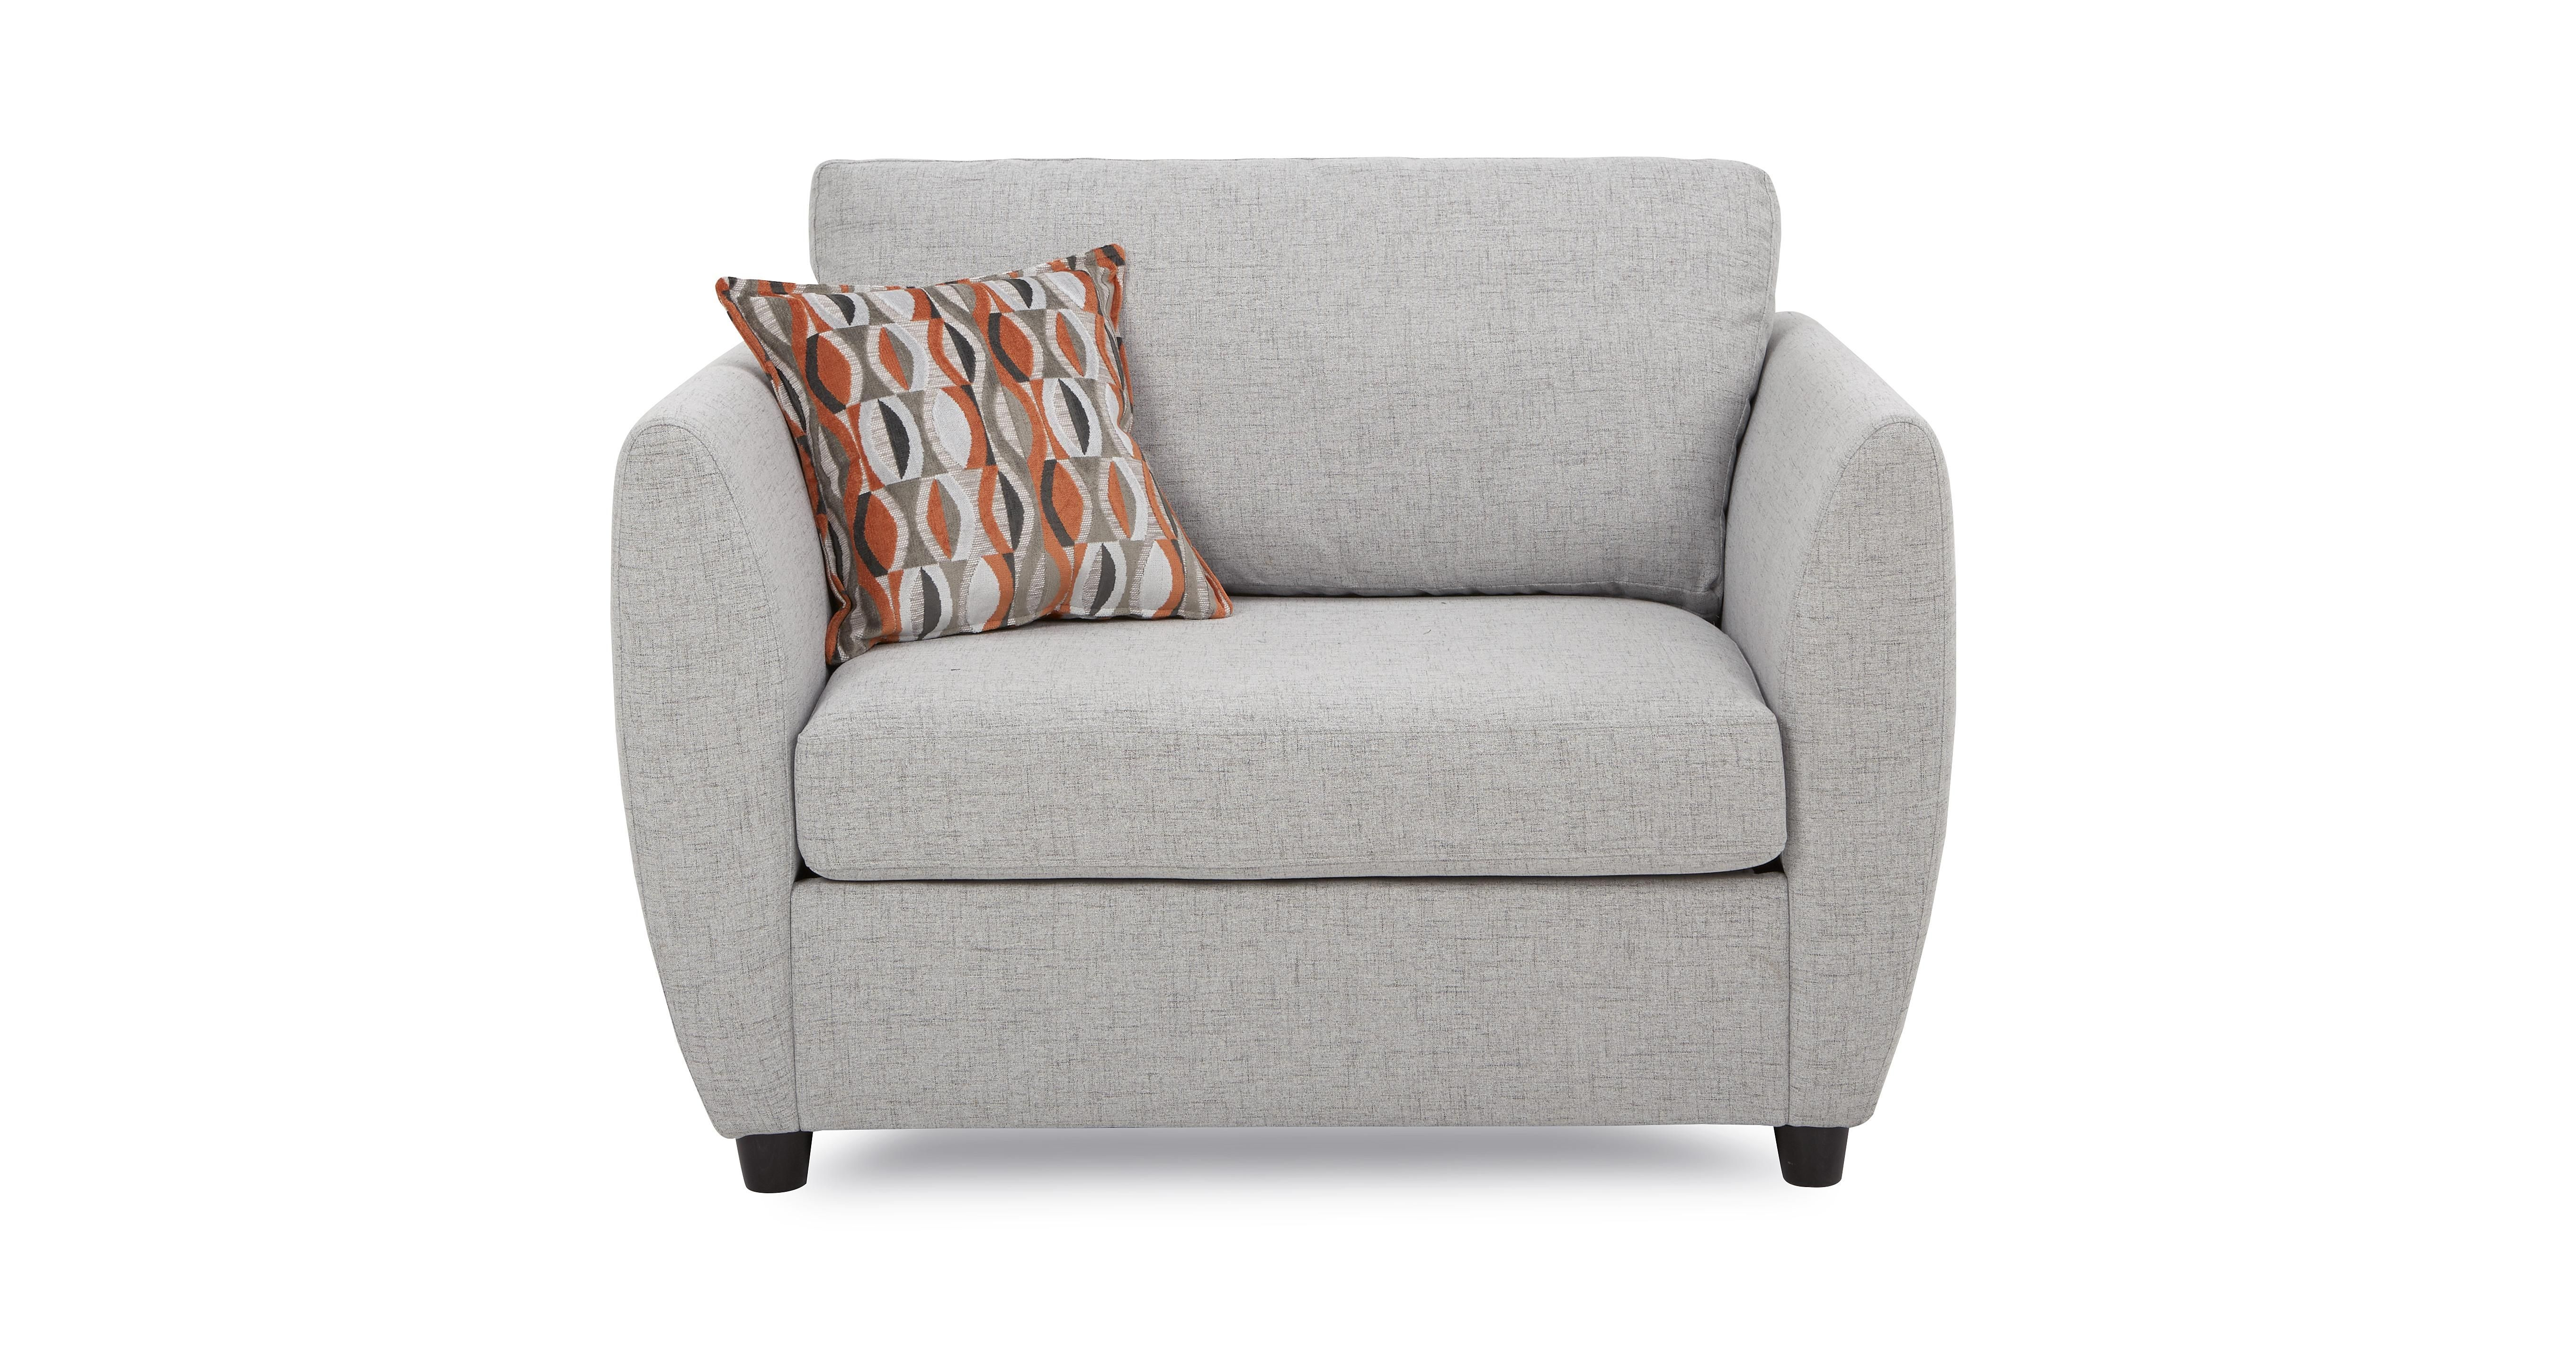 Best Single Sofa Bed Chair Single Sofa Bed Chair Single Sofa - Single Sofa Bed Chair